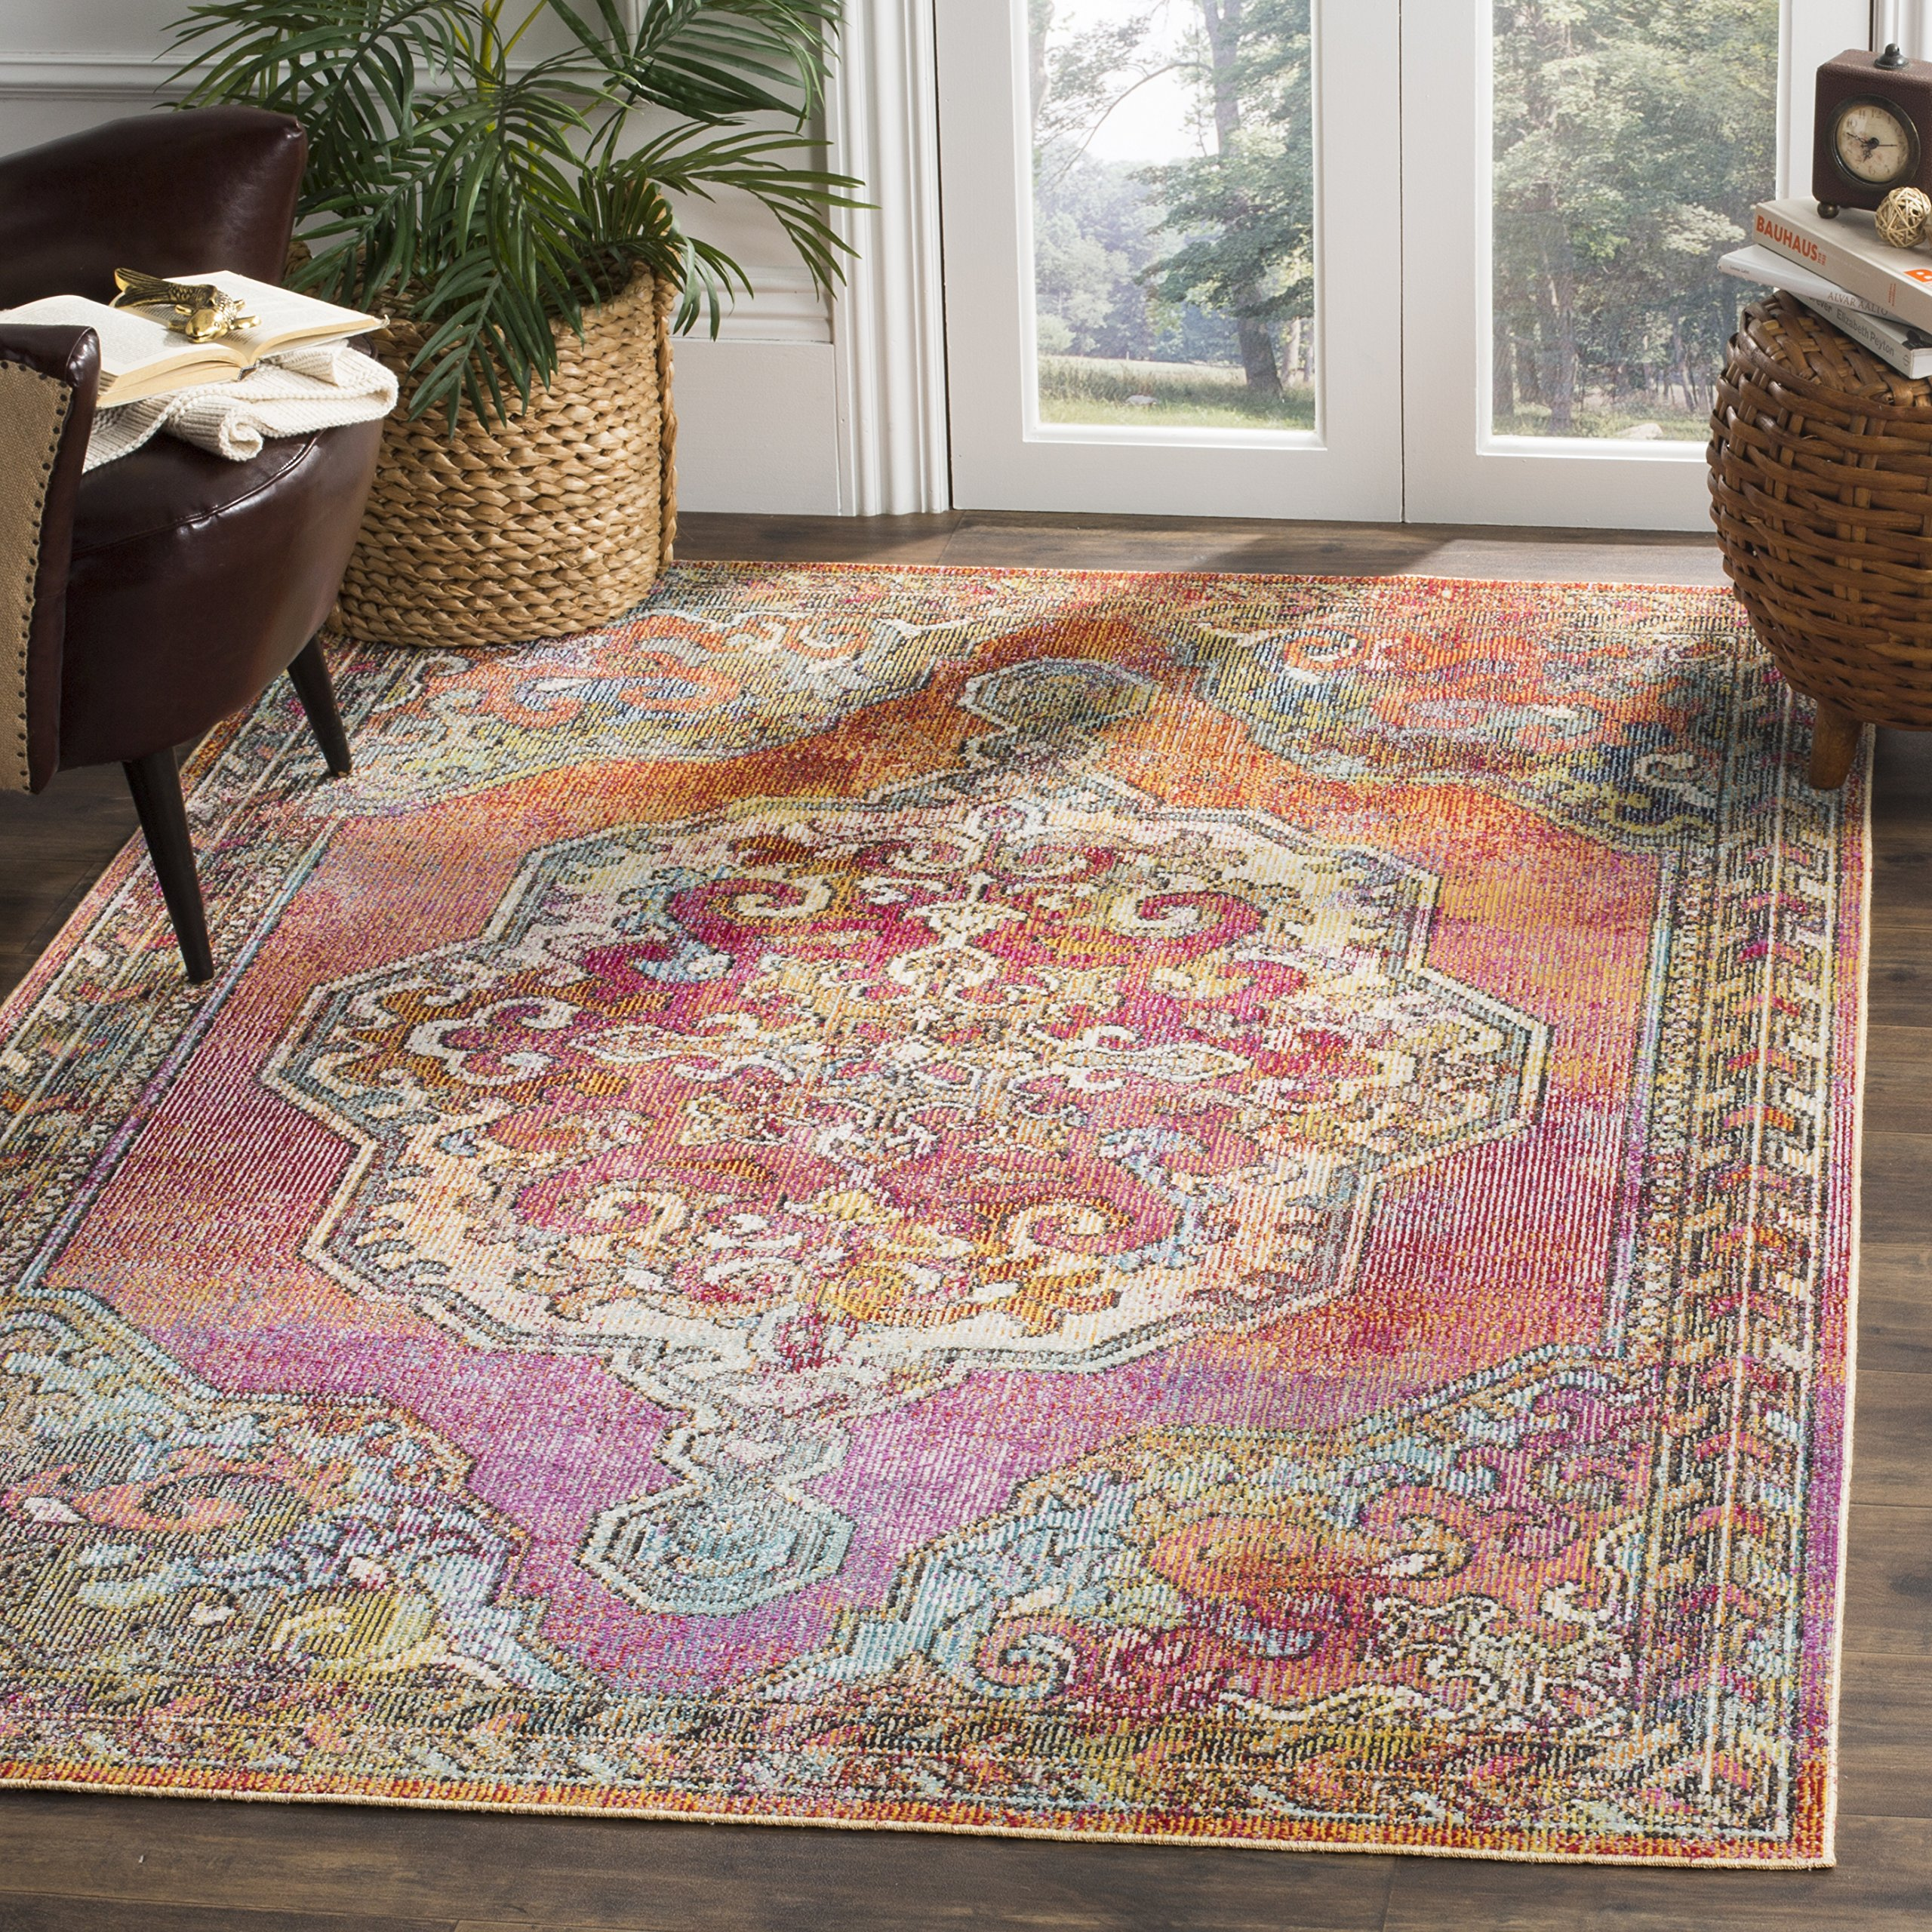 Safavieh Crystal Collection CRS502A Orange and Light Blue Bohemian Medallion Area Rug (8' x 10') by Safavieh